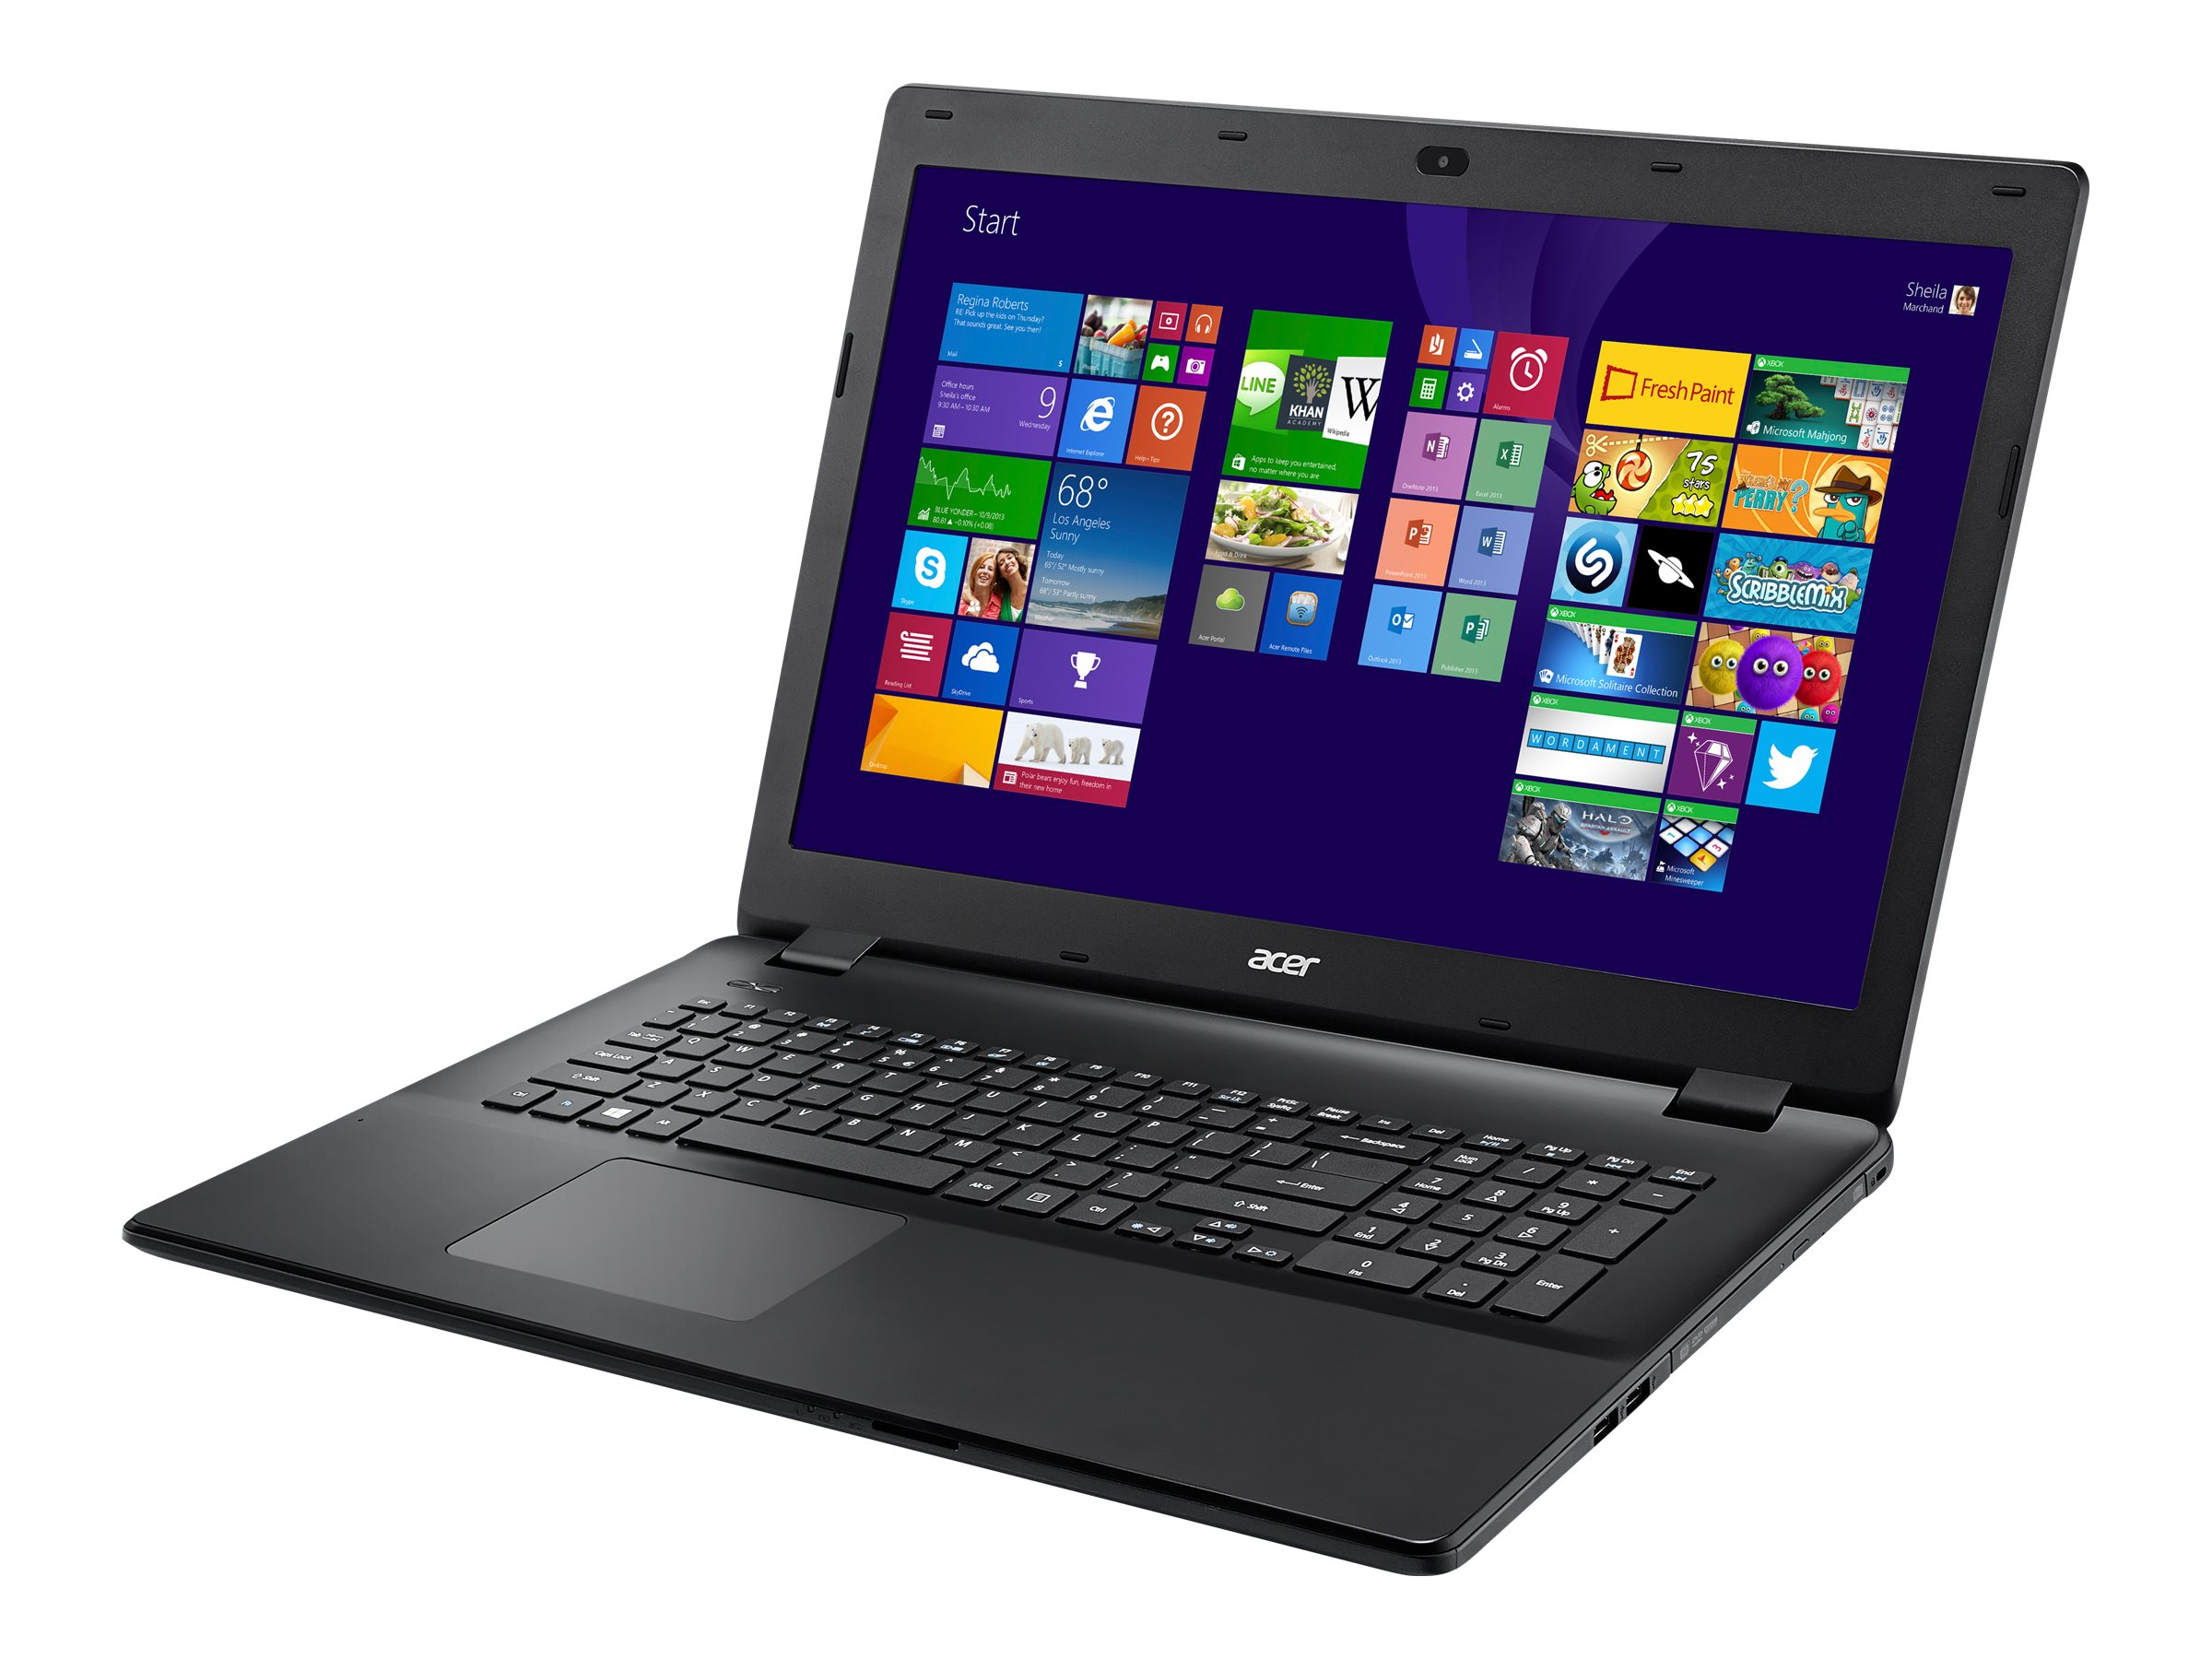 Acer TravelMate P246-M-52X2 1.7GHz Core i5 14in display